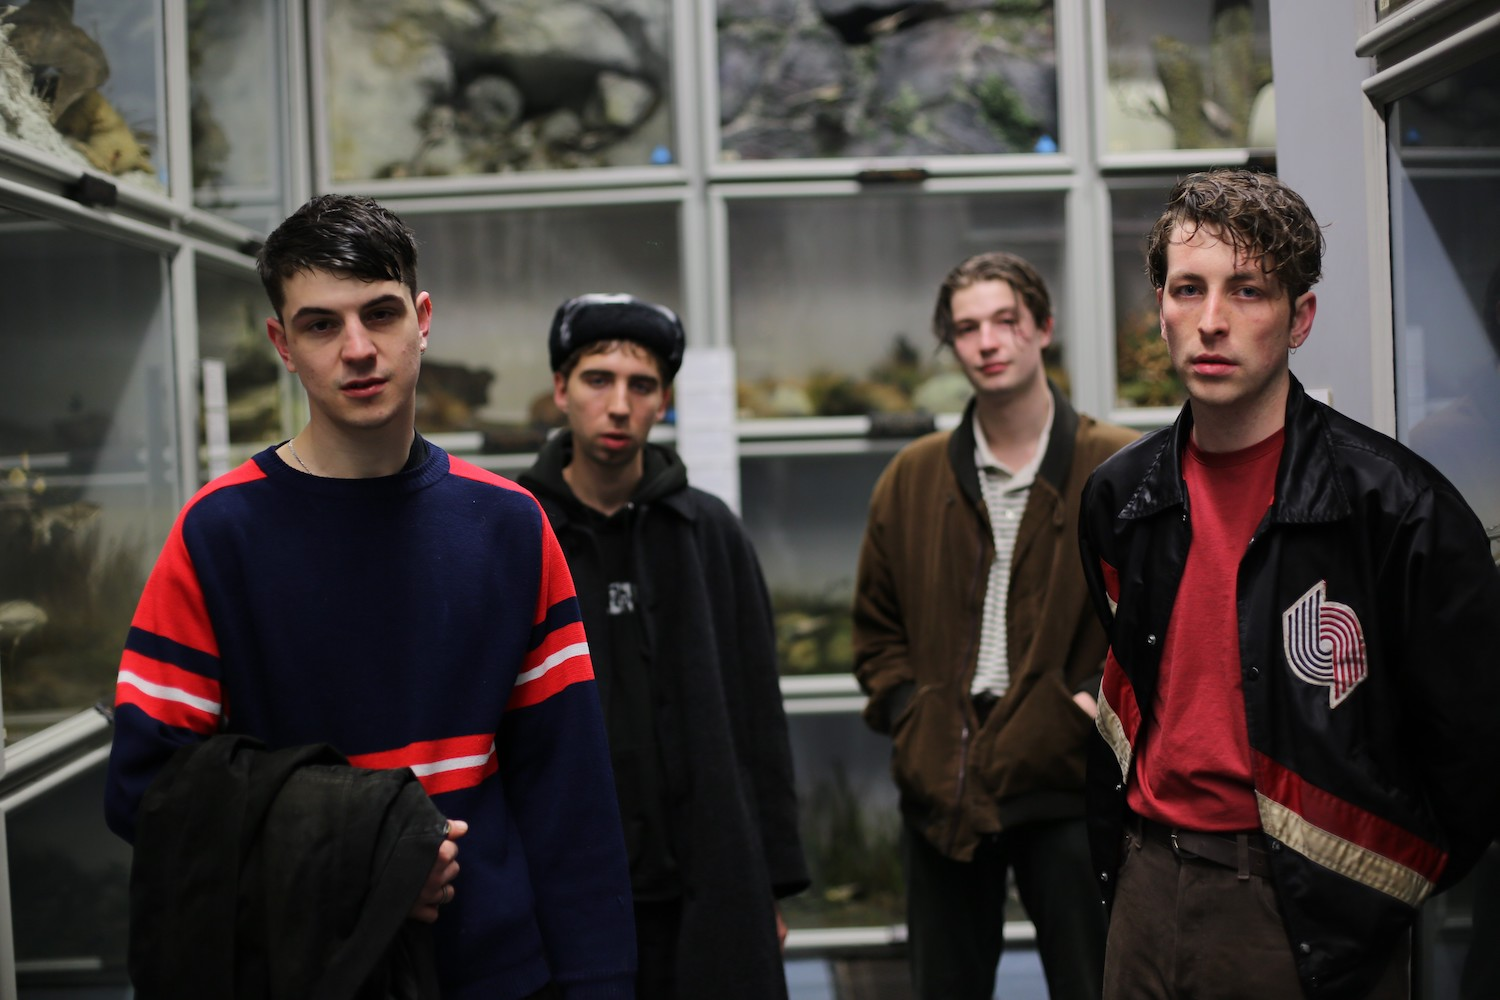 Post-punk outfit Egyptian Blue release 'Collateral' and announce debut EP